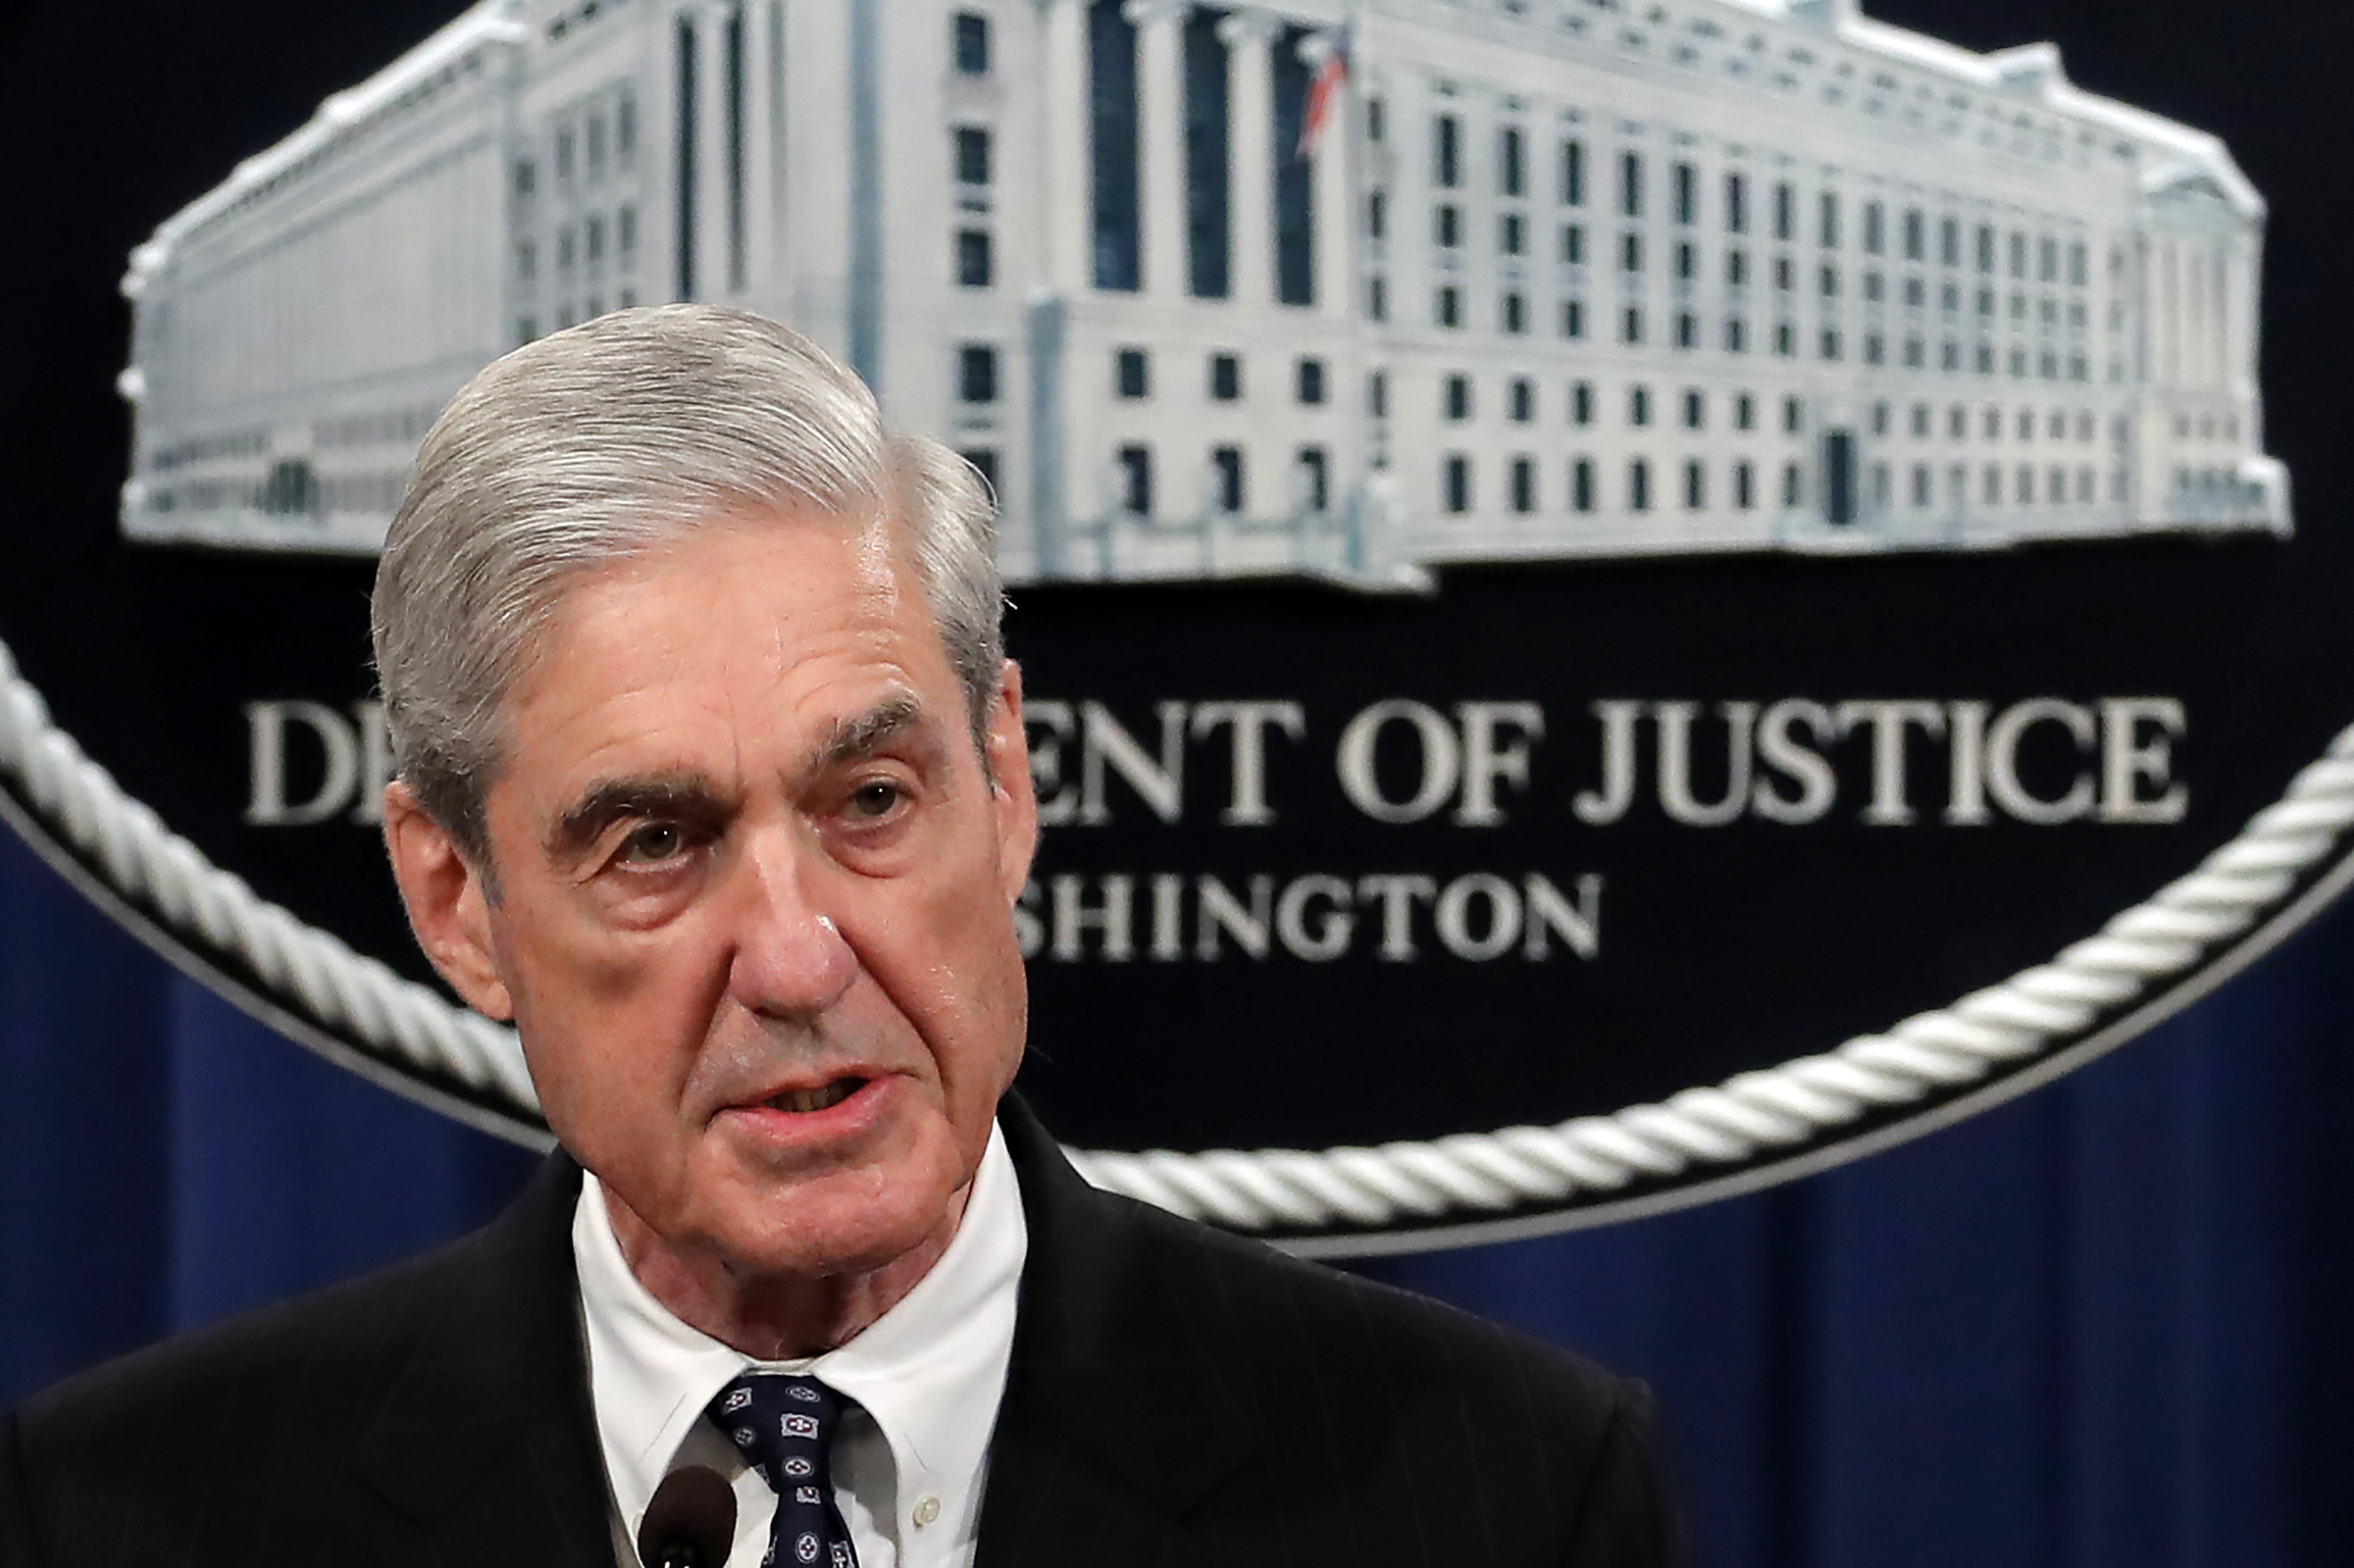 Democrats hope Mueller testimony will have profound impact